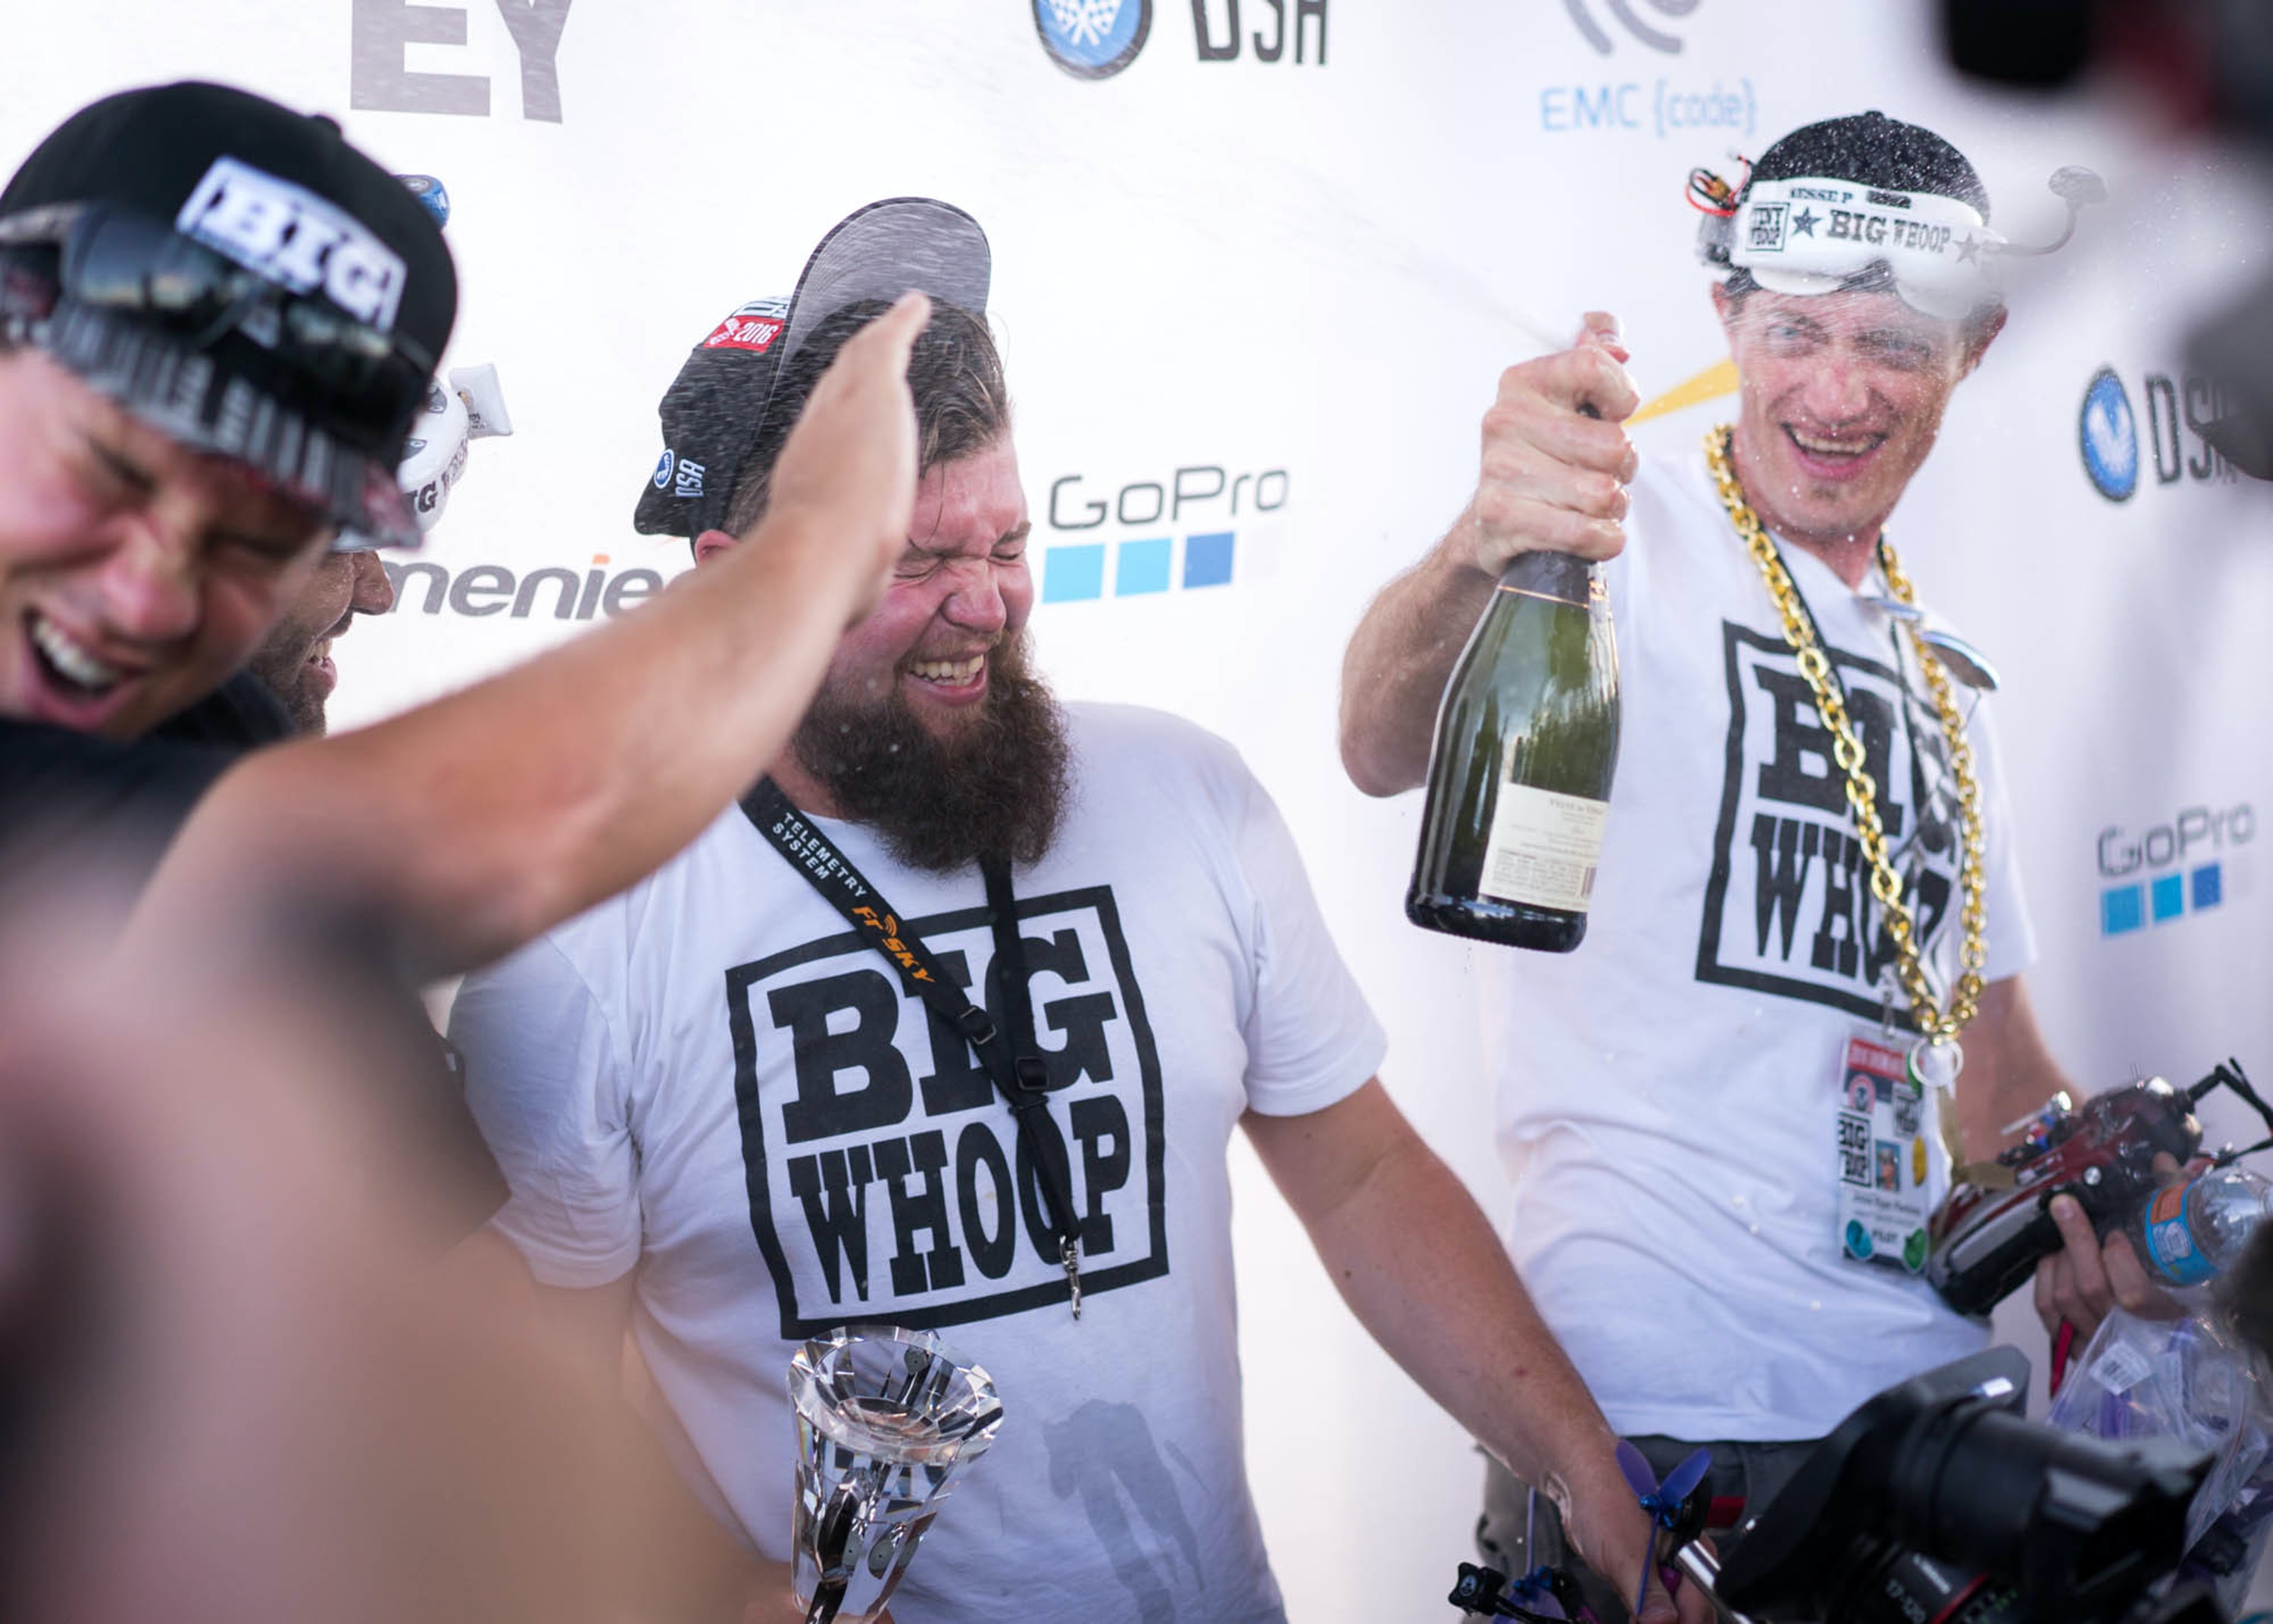 Why not spray sweet, sweet victory Champagne all over $500 goggles?